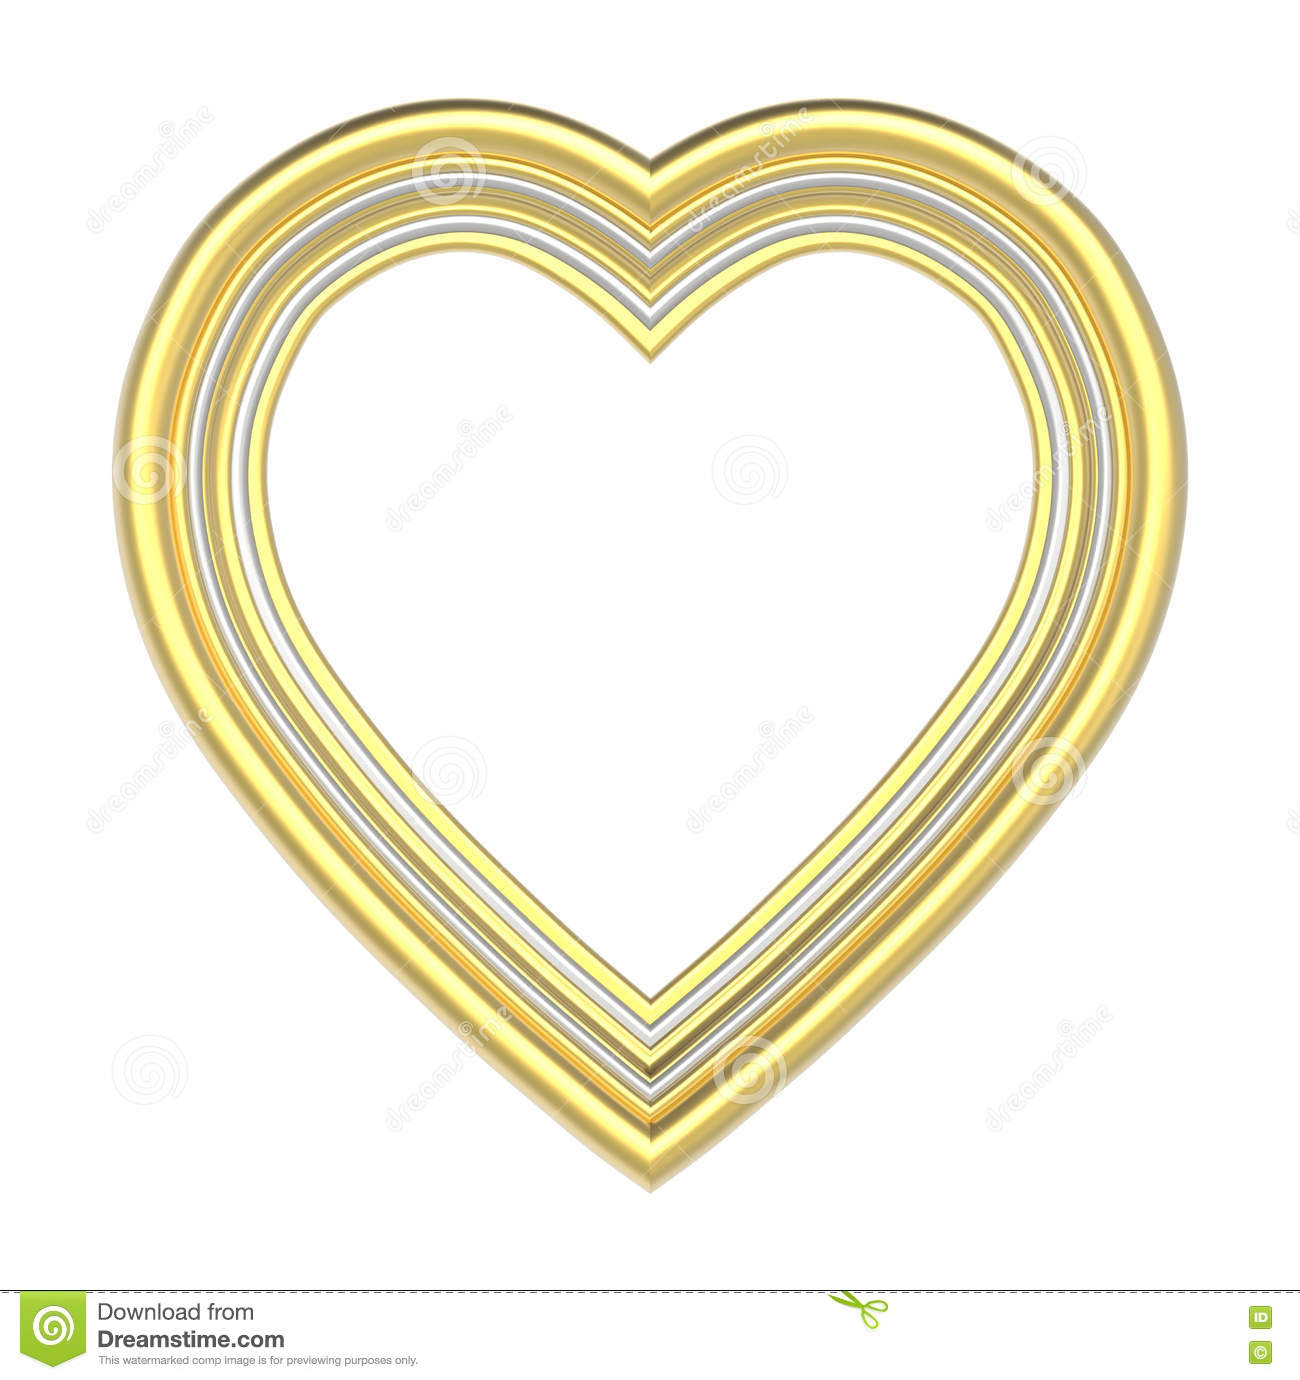 Gold heart picture frame isolated on white.